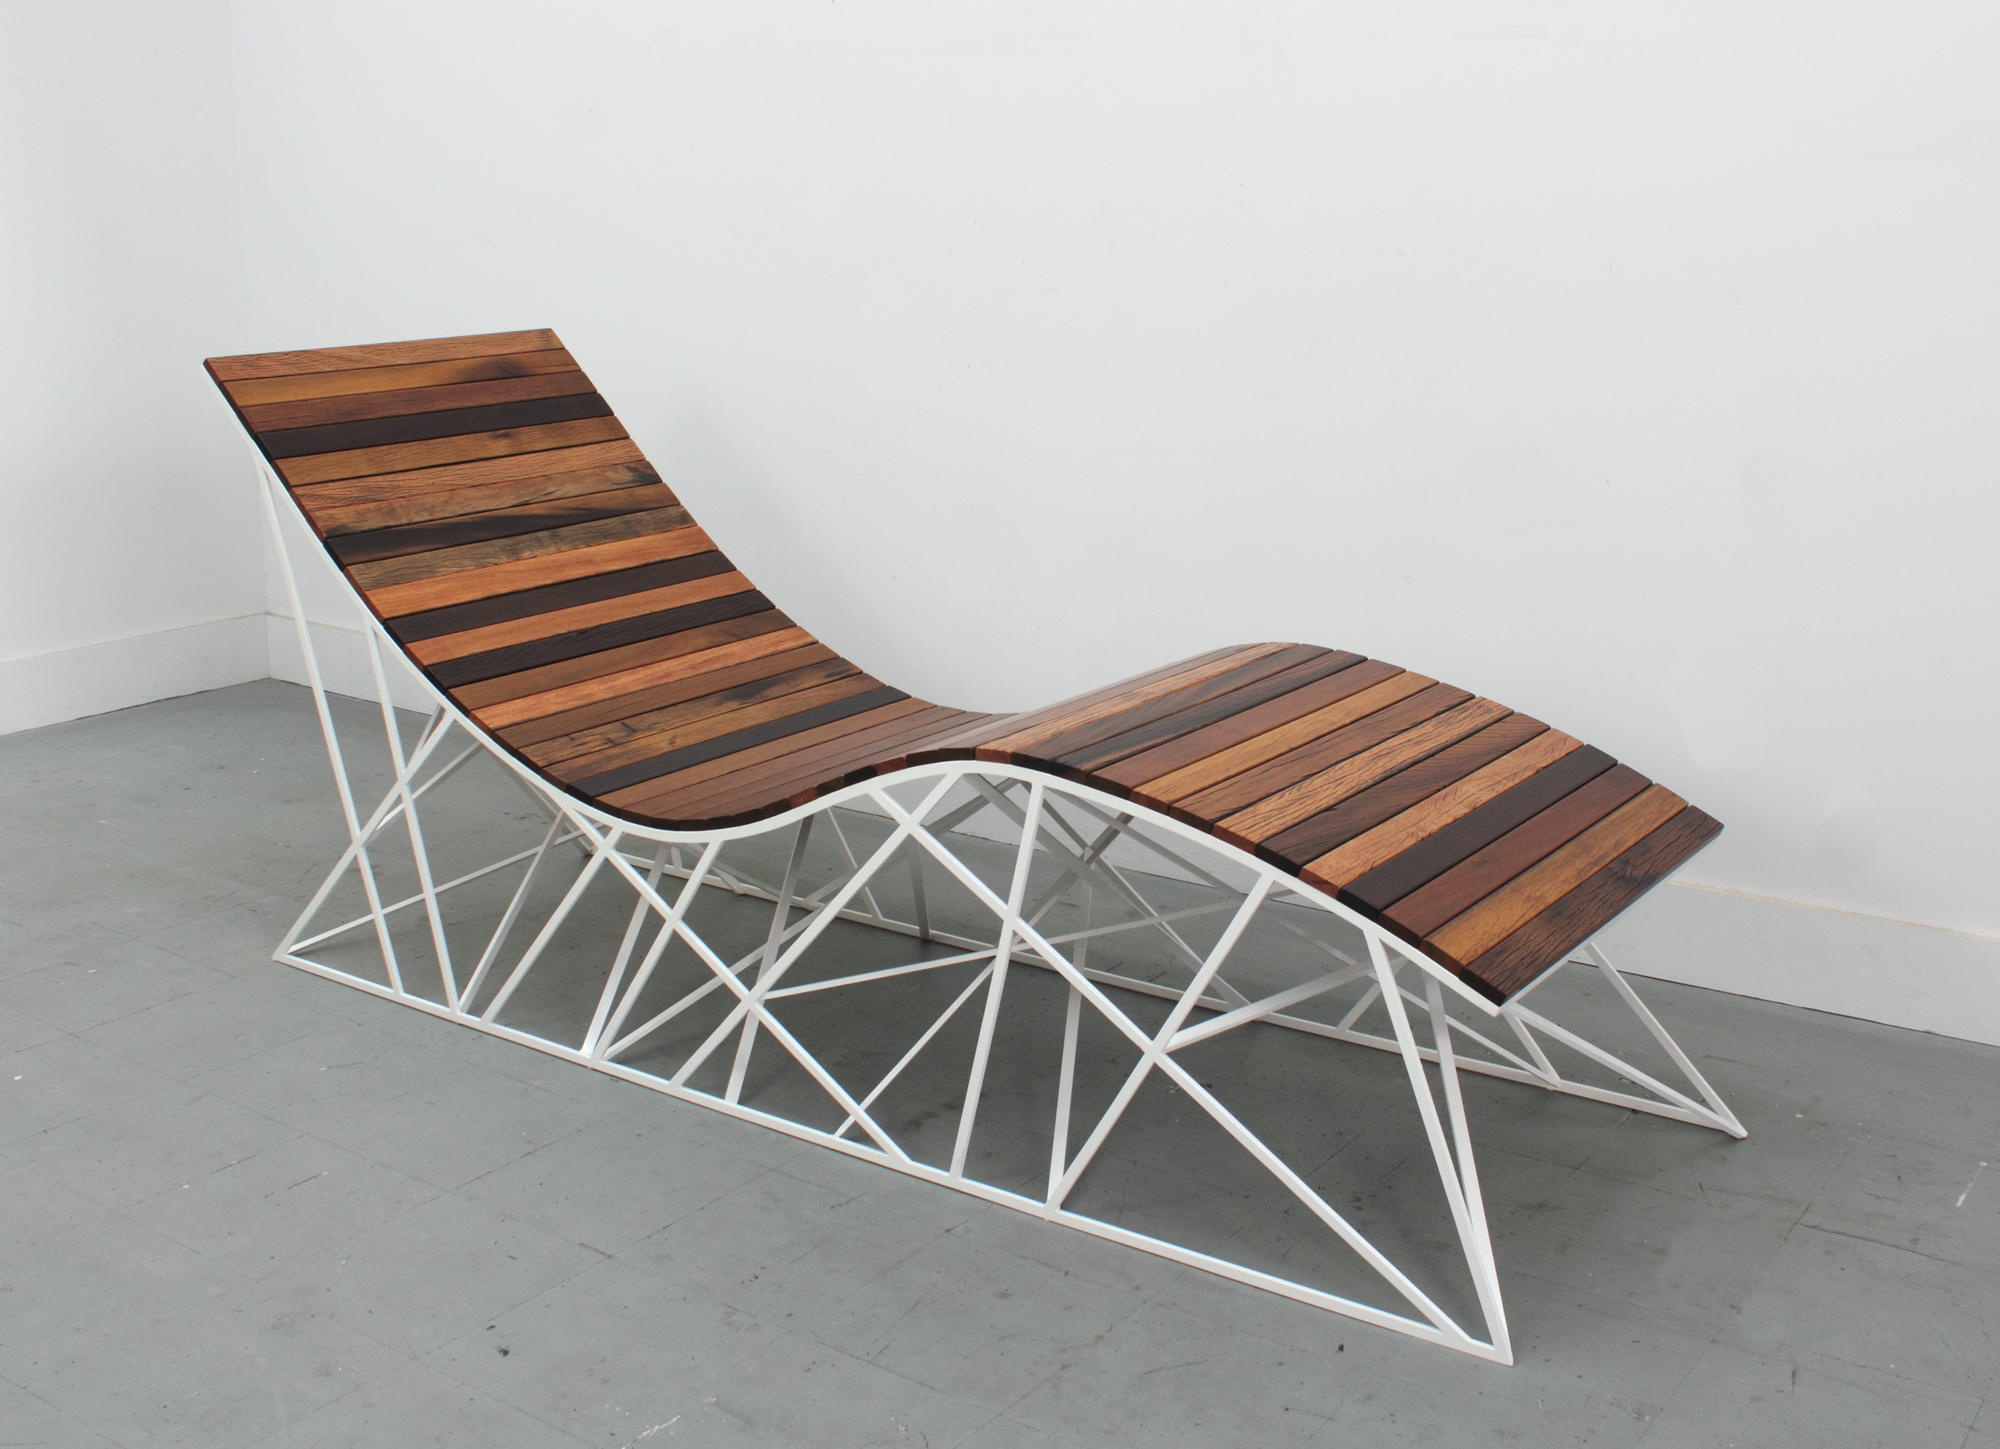 ... Cyclone Lounger by Uhuru Design | Chaise longues & CYCLONE LOUNGER - Chaise longues from Uhuru Design | Architonic